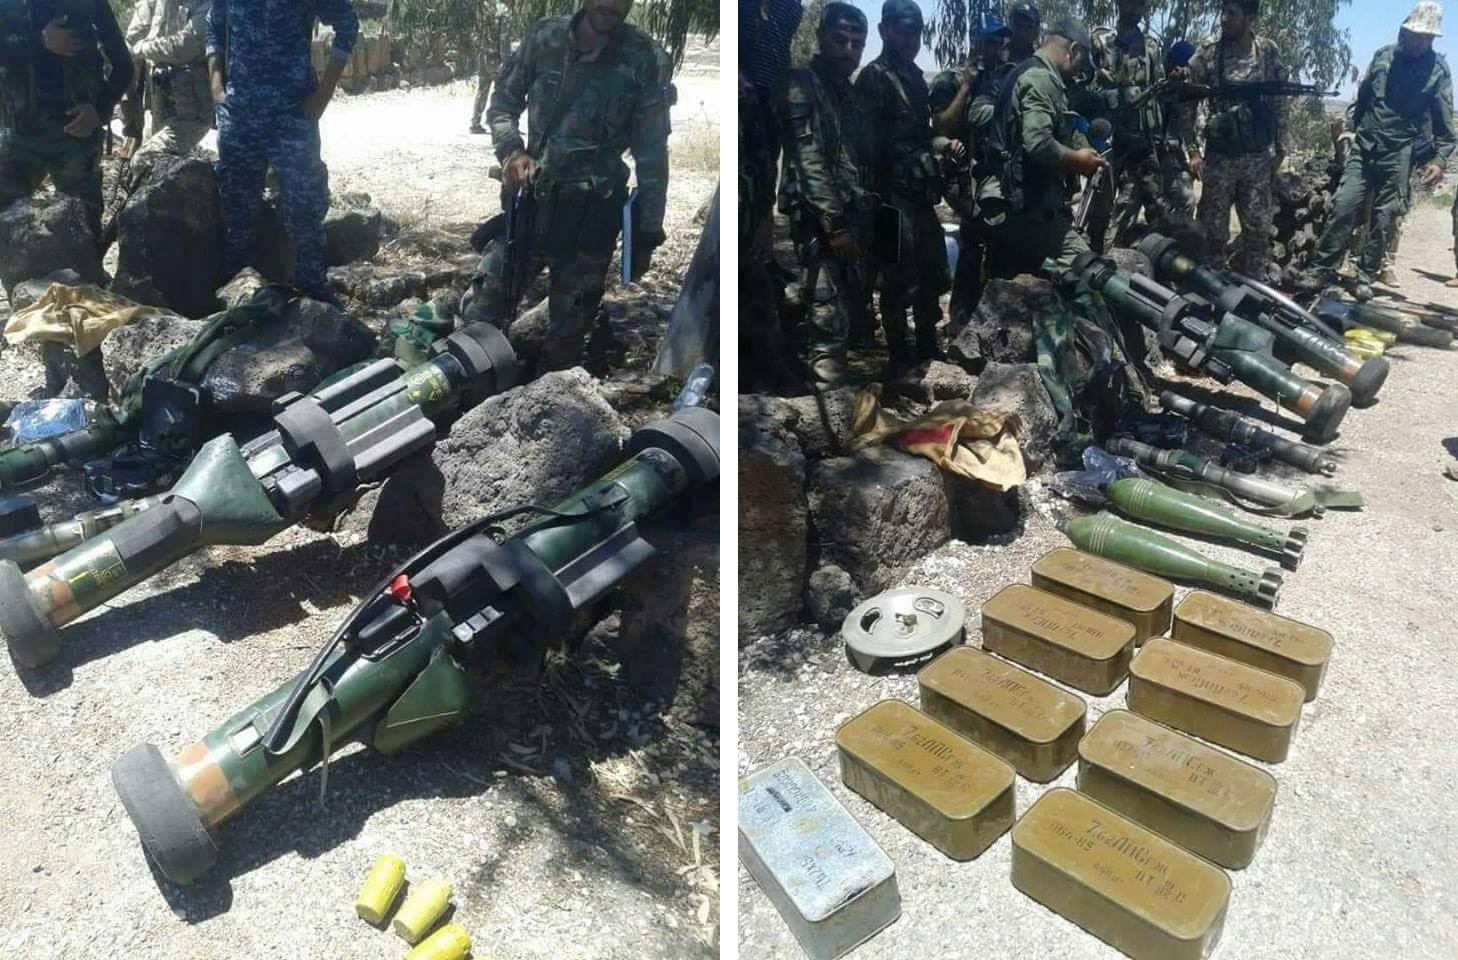 Syrian Forces Seize French Made Anti-Tank Weapons In Daraa